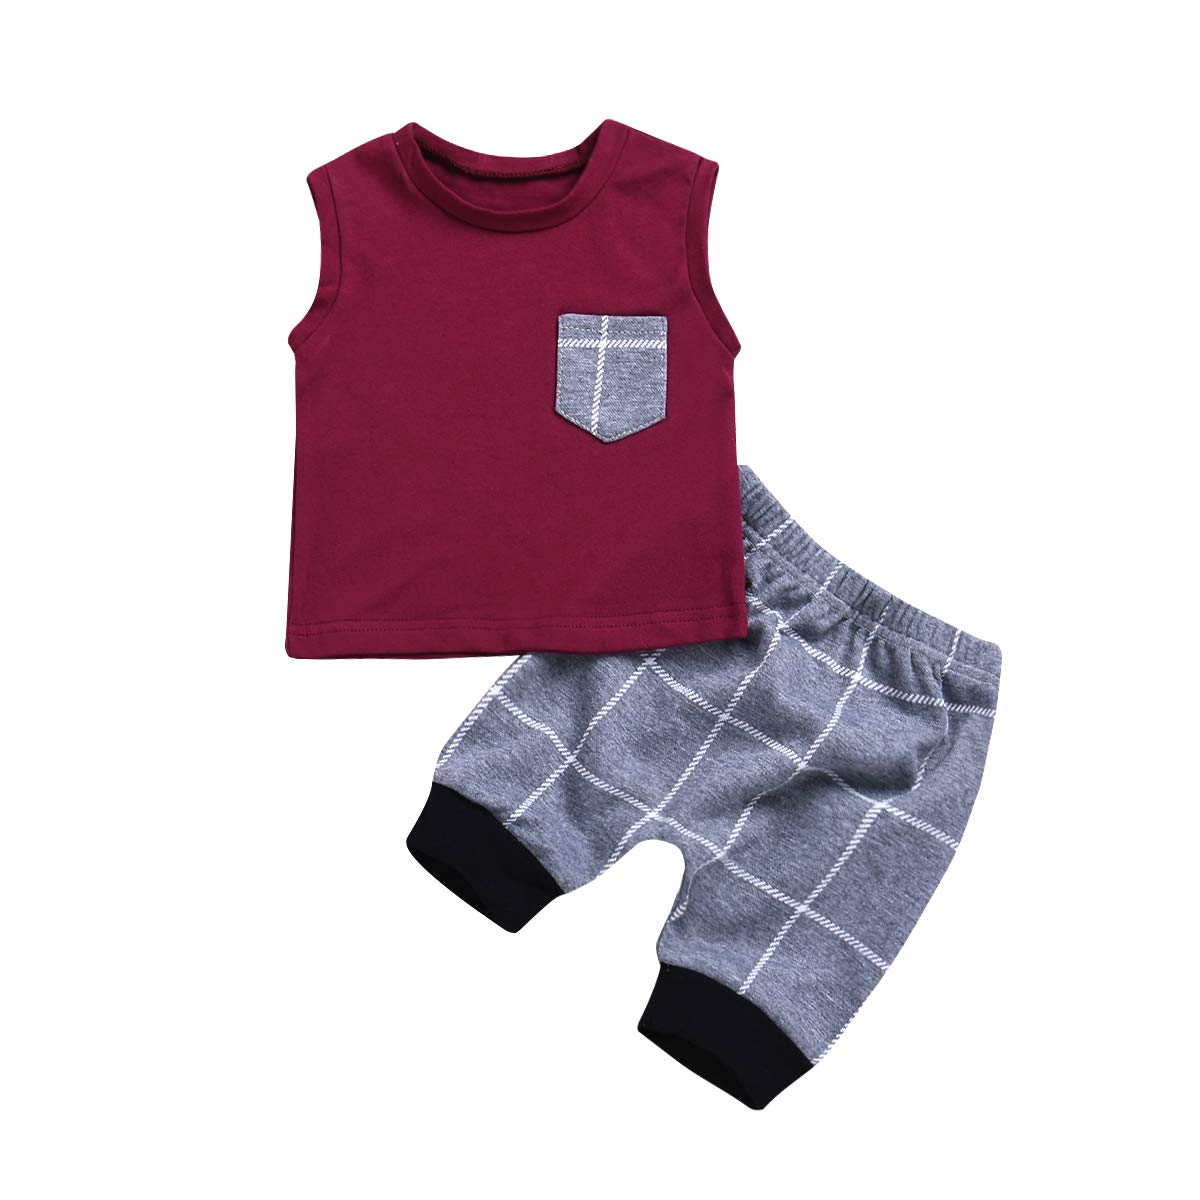 Baby Boys Outfits Vest Tops +Shorts ,Plaid Pocket Romper Long Sleeve Top +striped Pants Clothing Set Winter Autumn